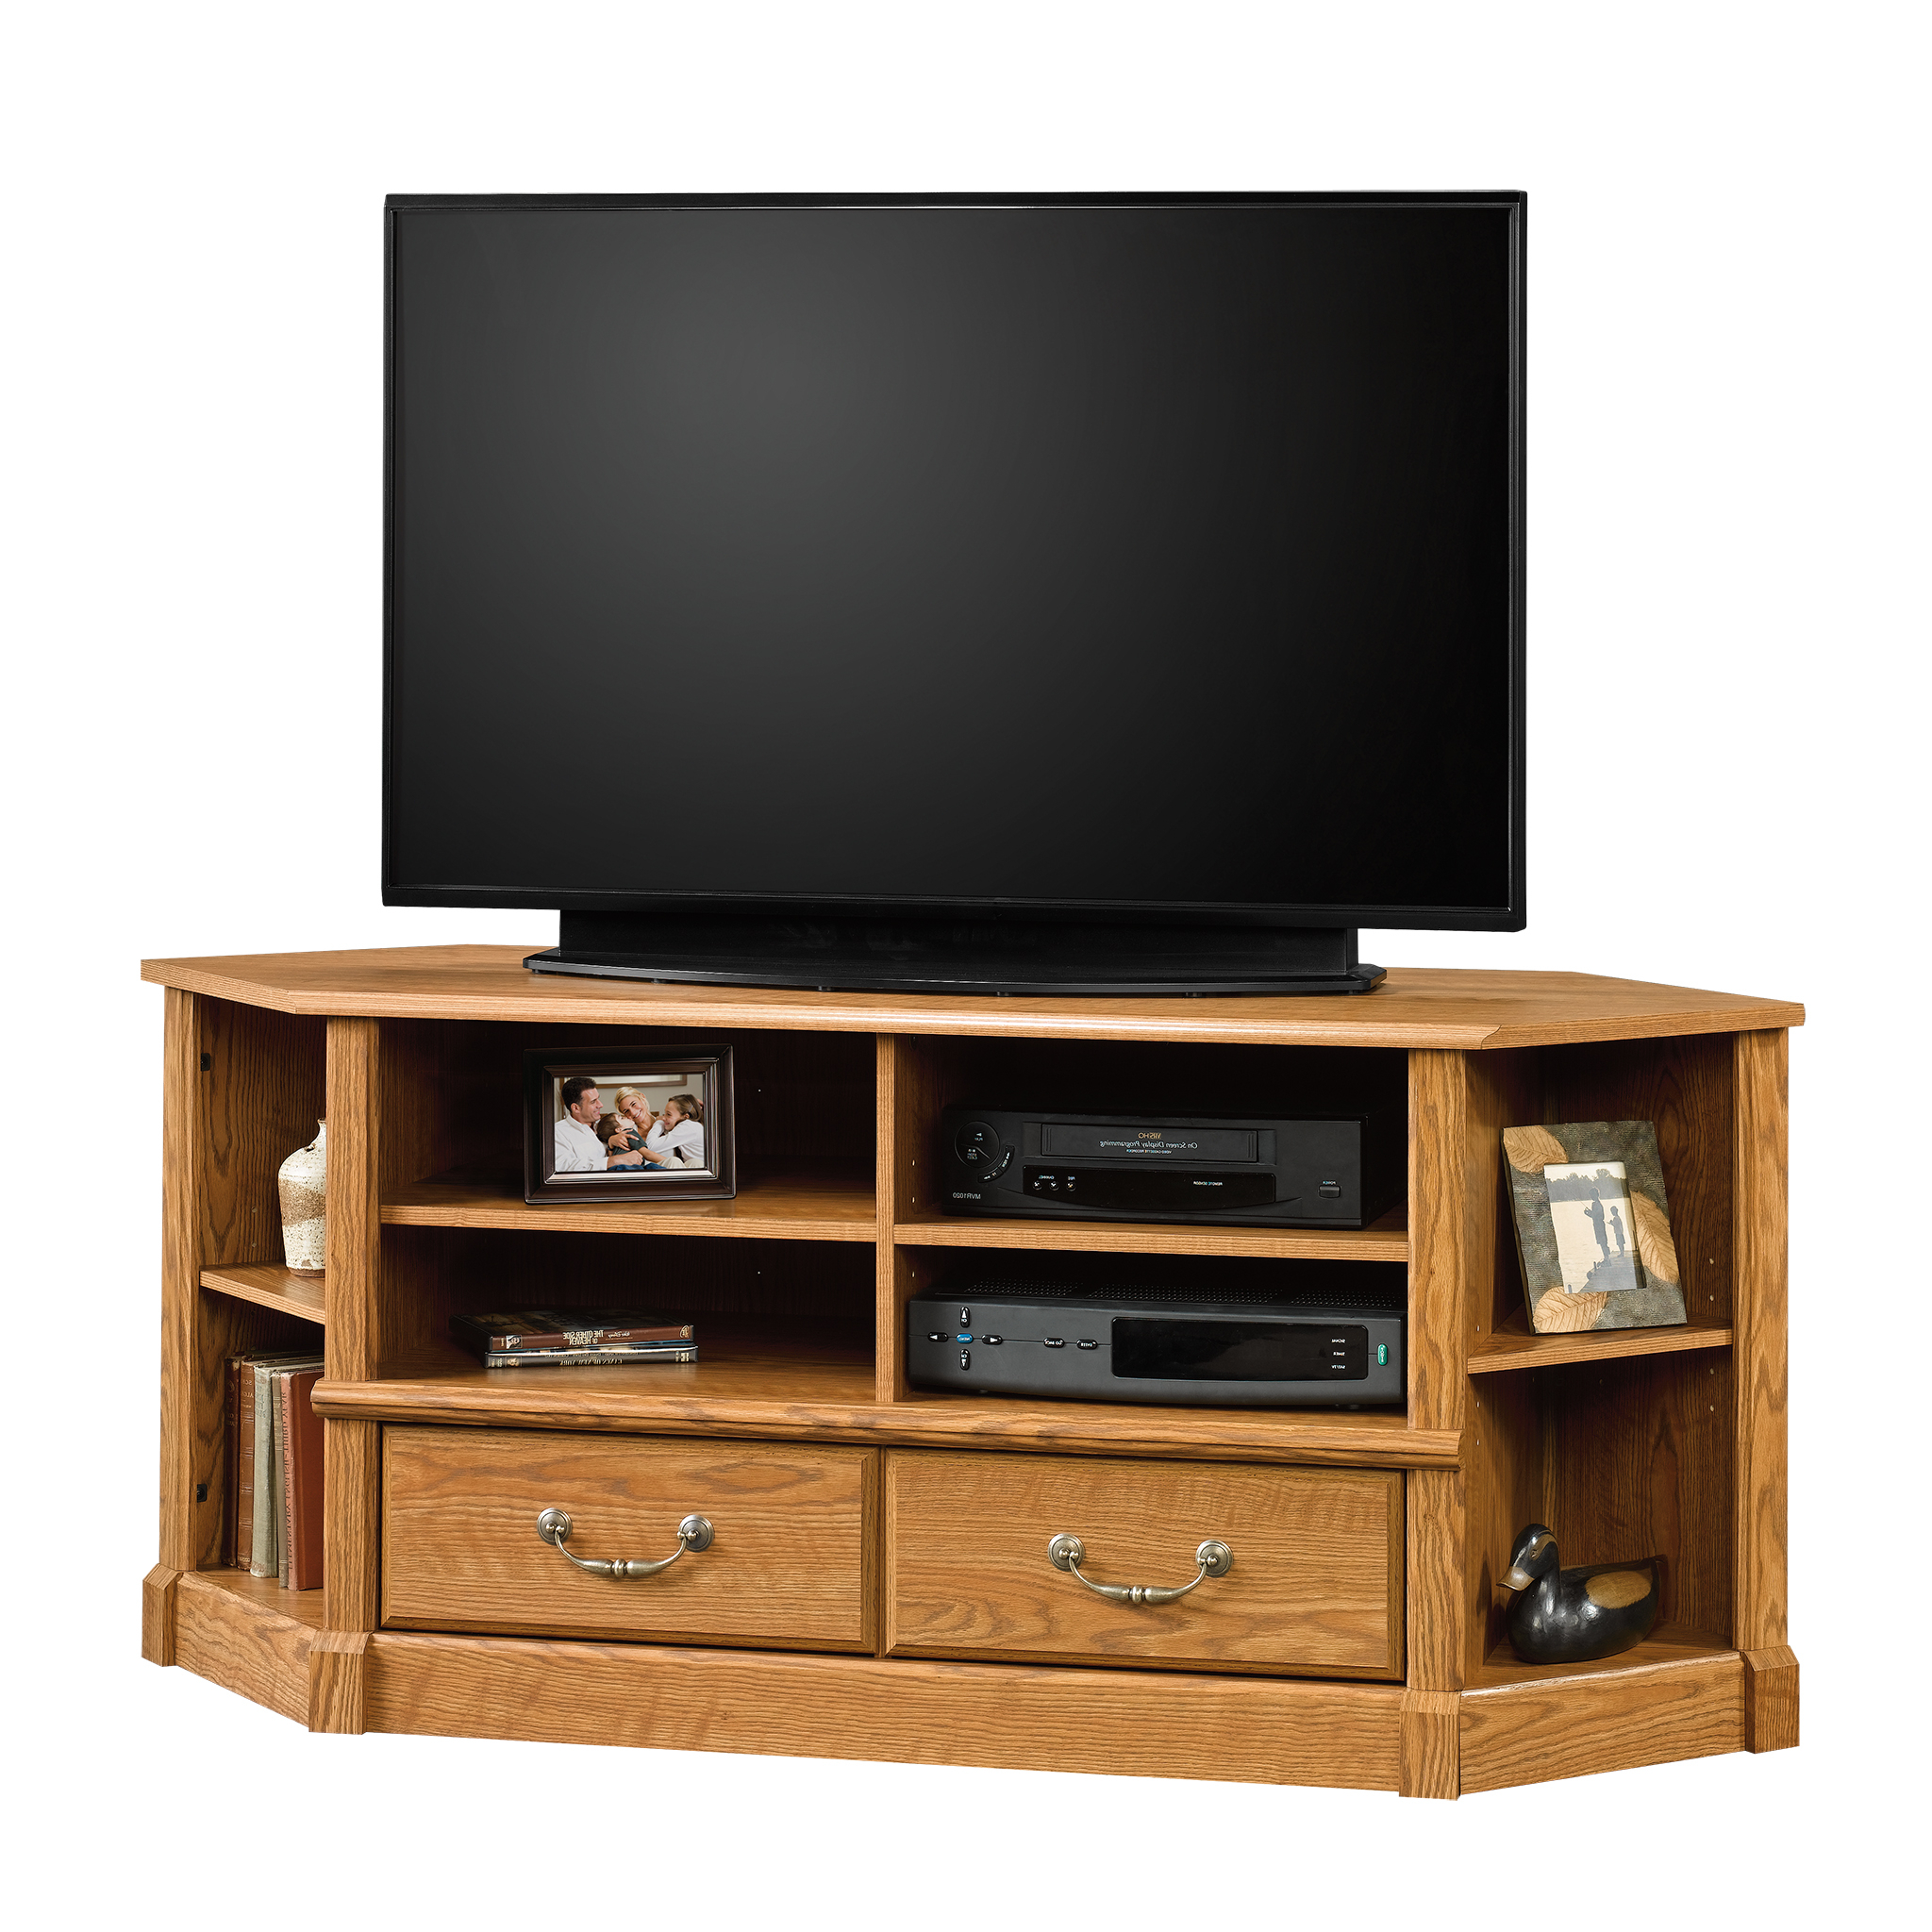 """Sauder Orchard Hills Corner Tv Stand For Tvs Up To 50 Throughout Well Known Lansing Tv Stands For Tvs Up To 50"""" (View 8 of 25)"""